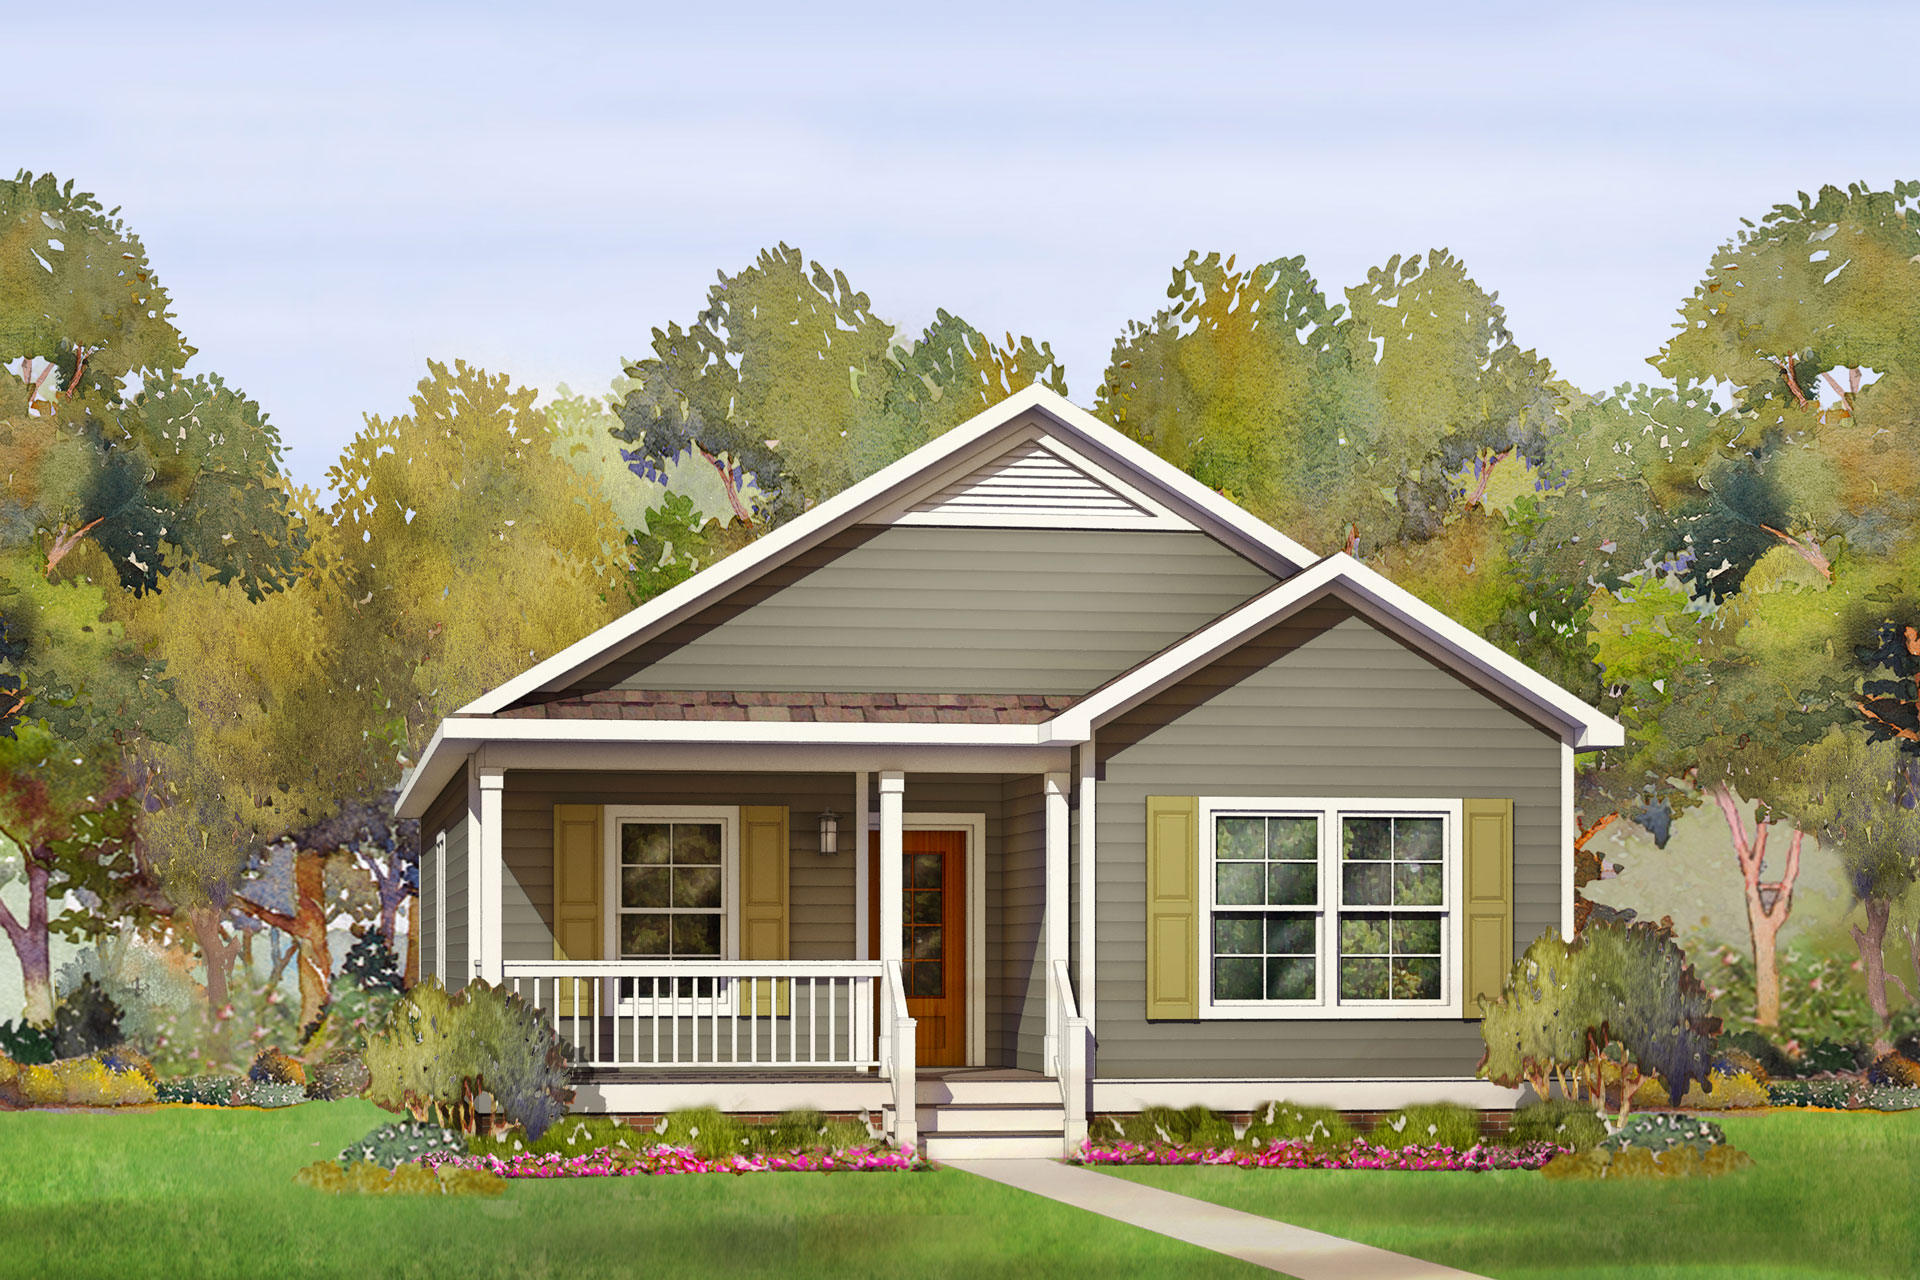 deerwood modular home rendering